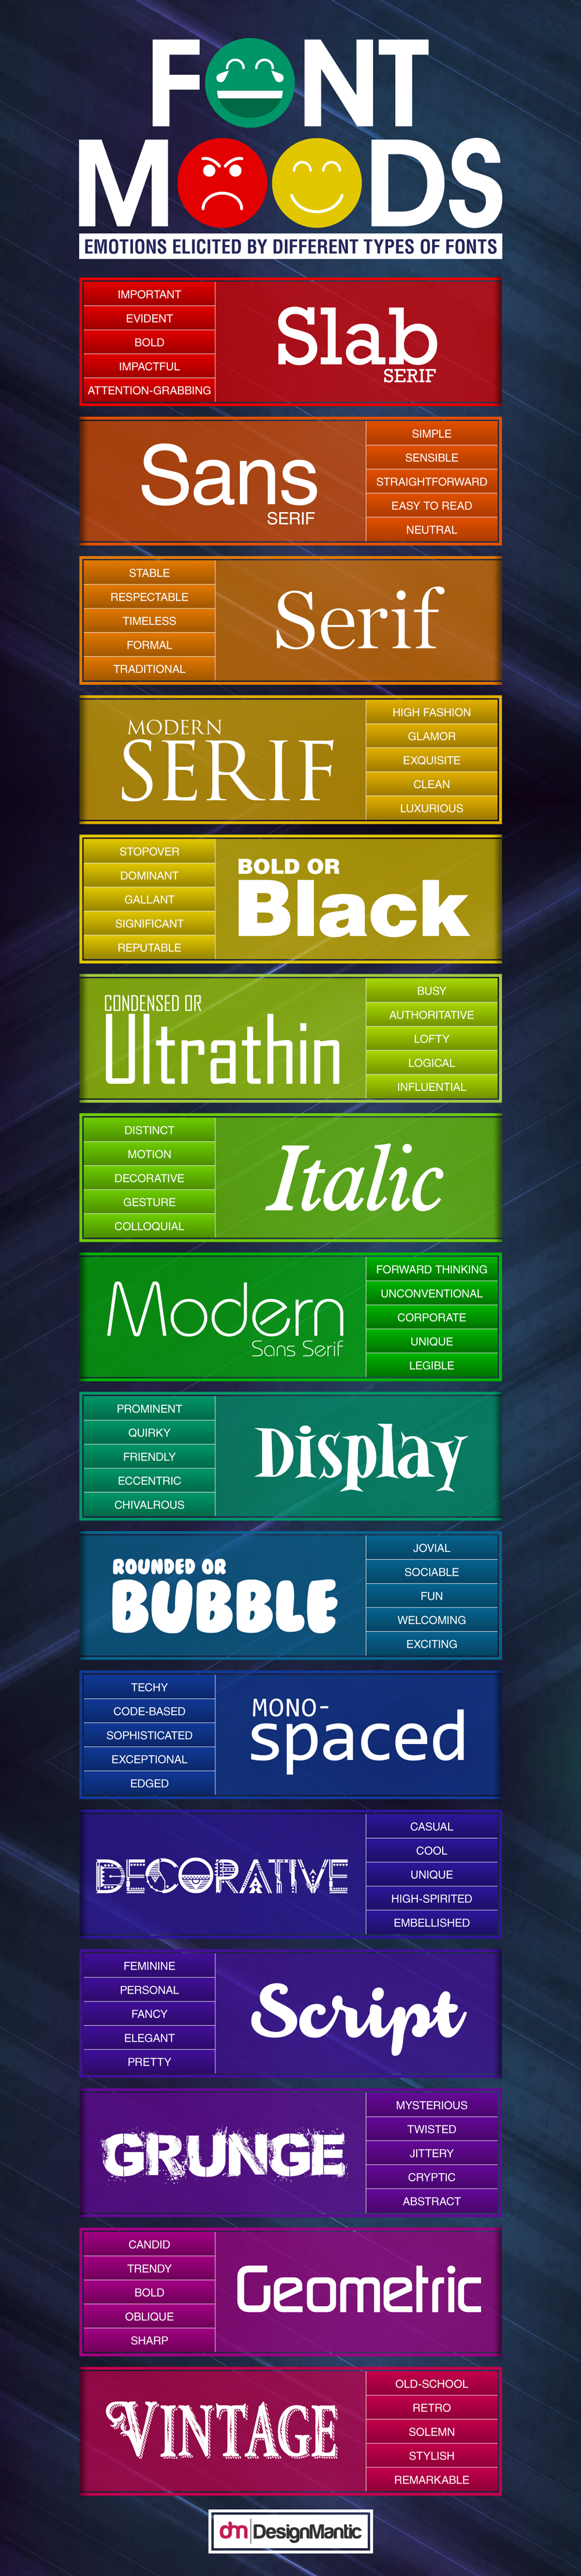 Font Moods: Emotions Elicited By Different Types of Fonts!